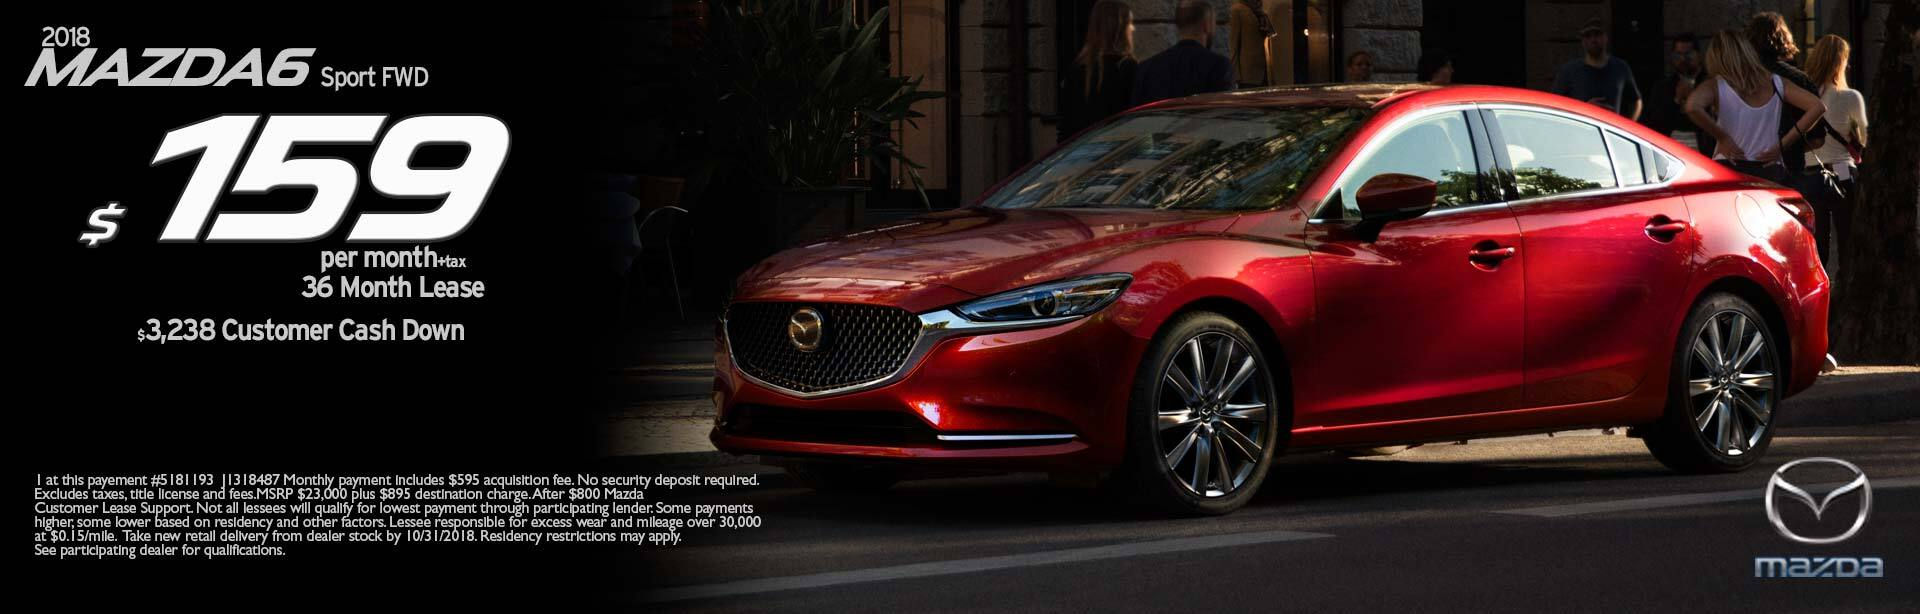 Mazda: a selection of sites